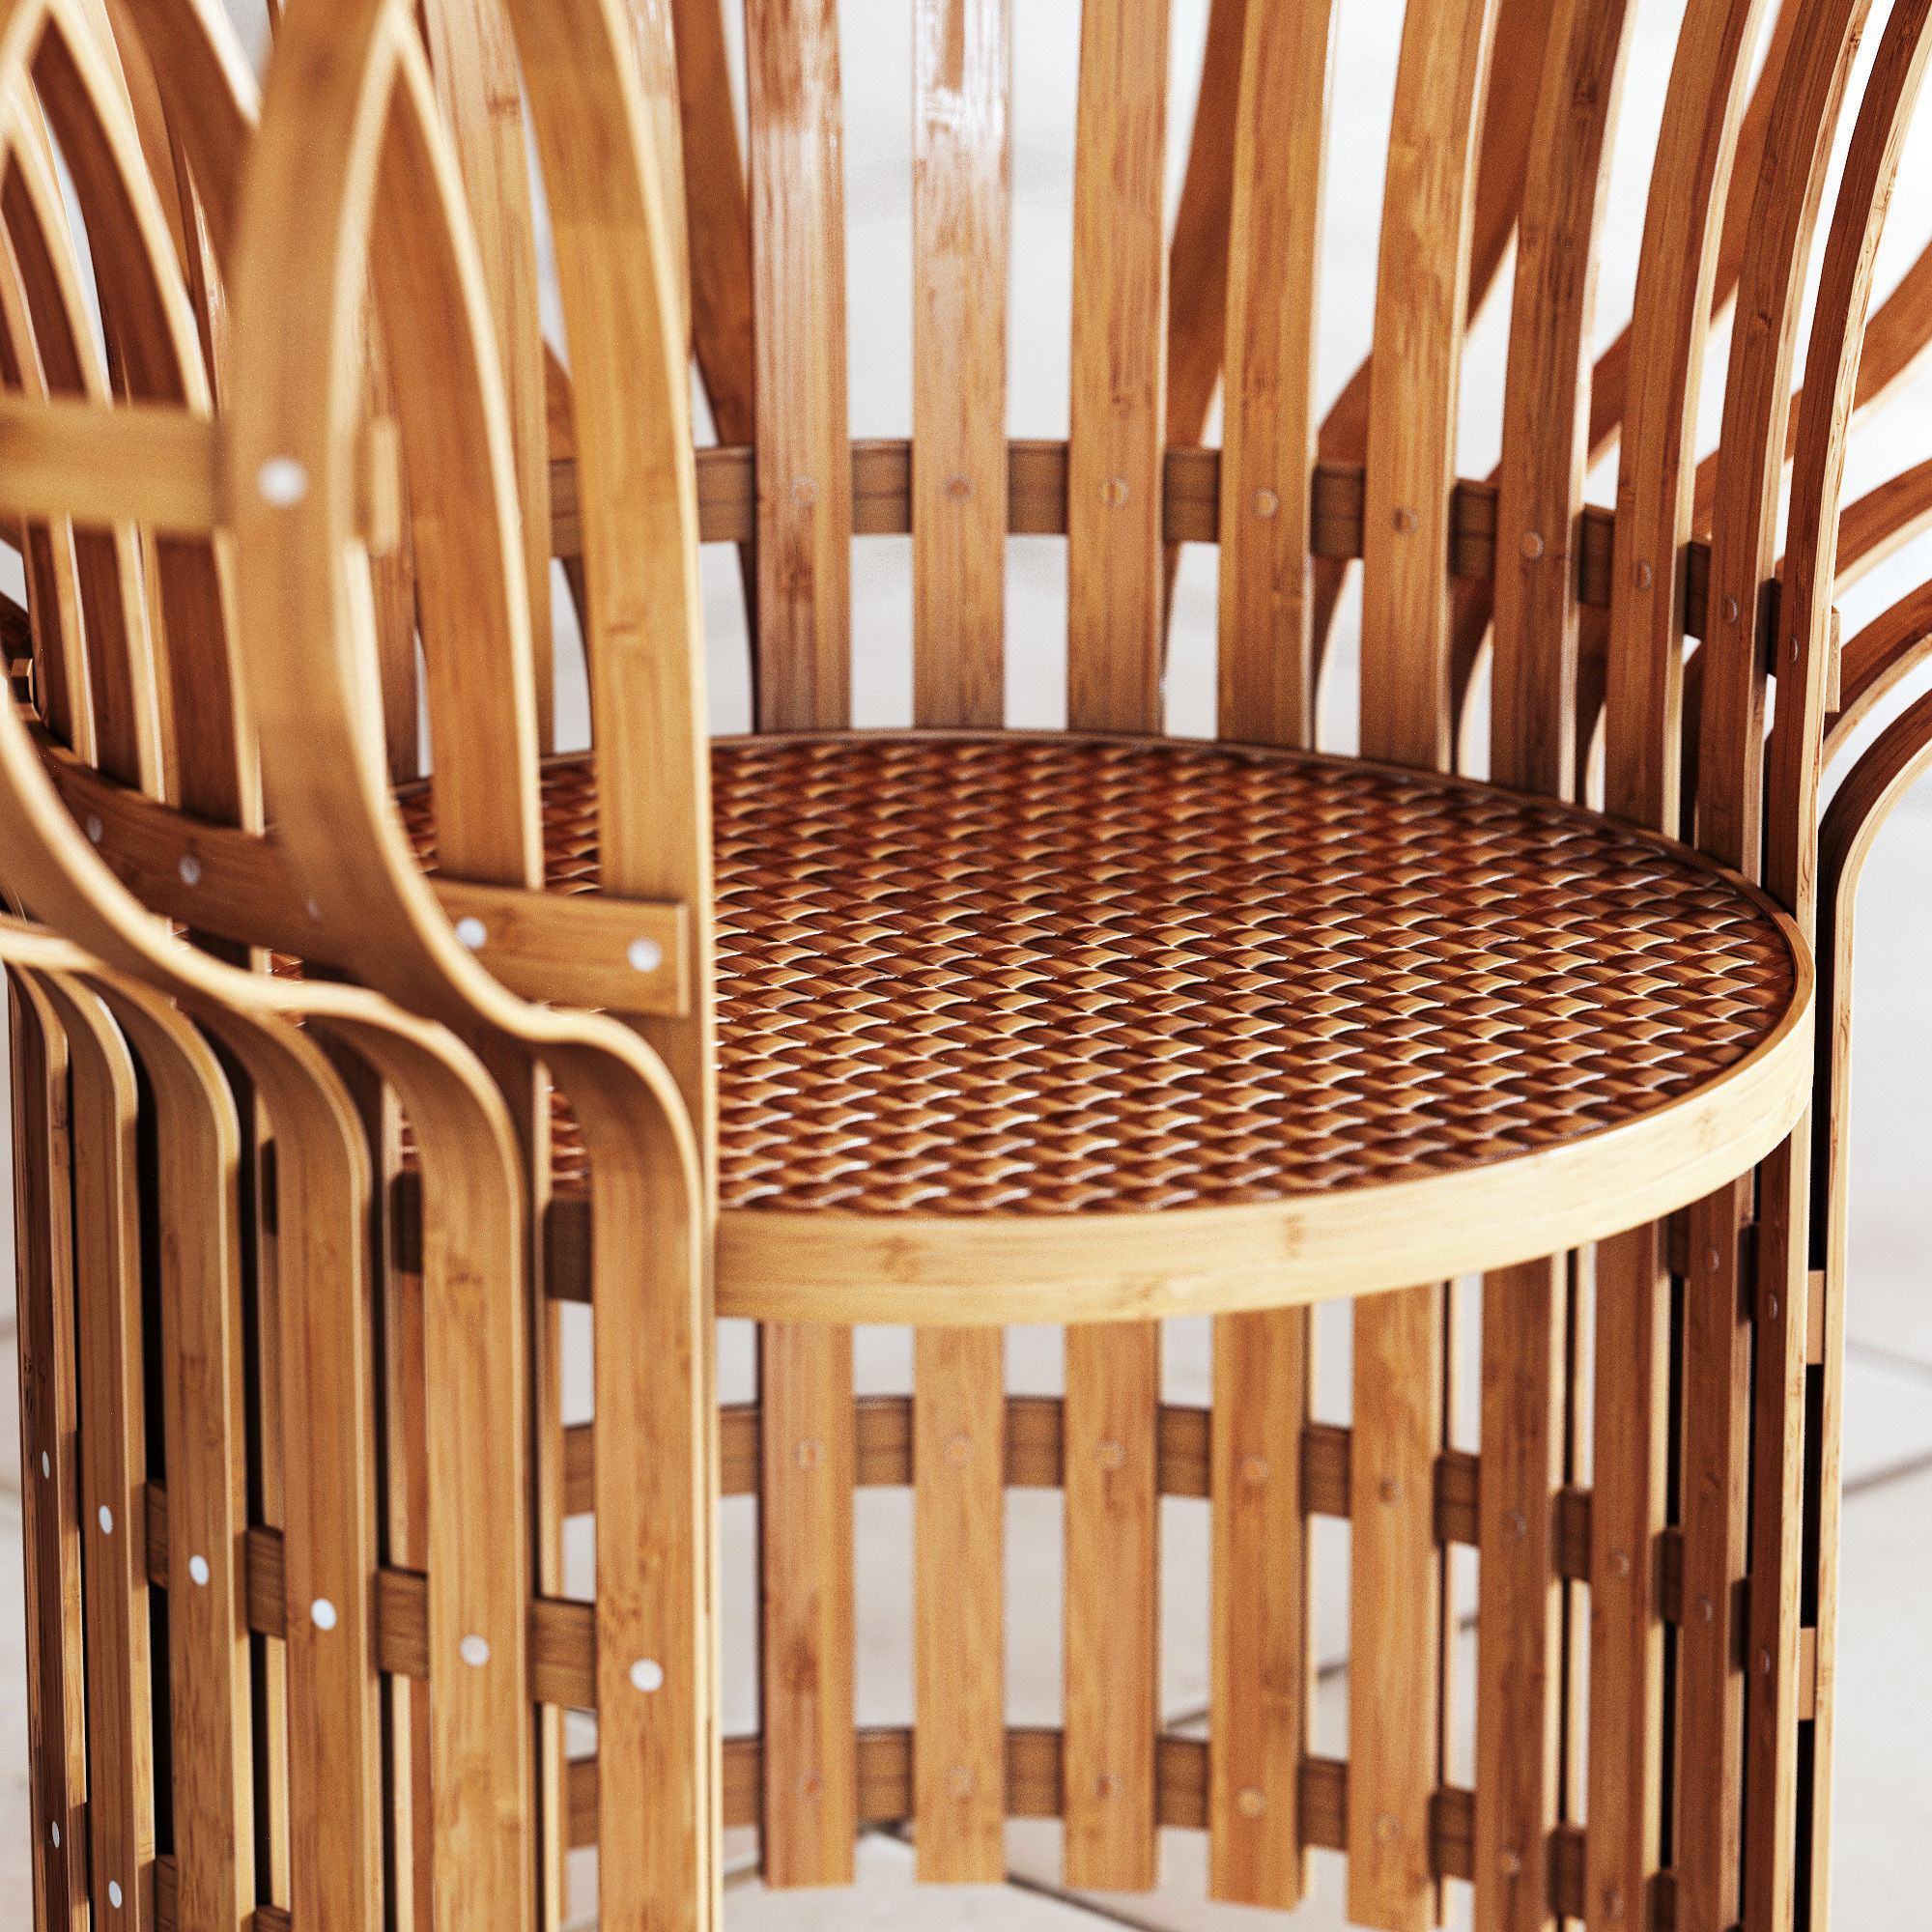 ... Armchair Made Of Bent And Woven Bamboo 3d Model Max Obj Fbx Mtl 3 ...